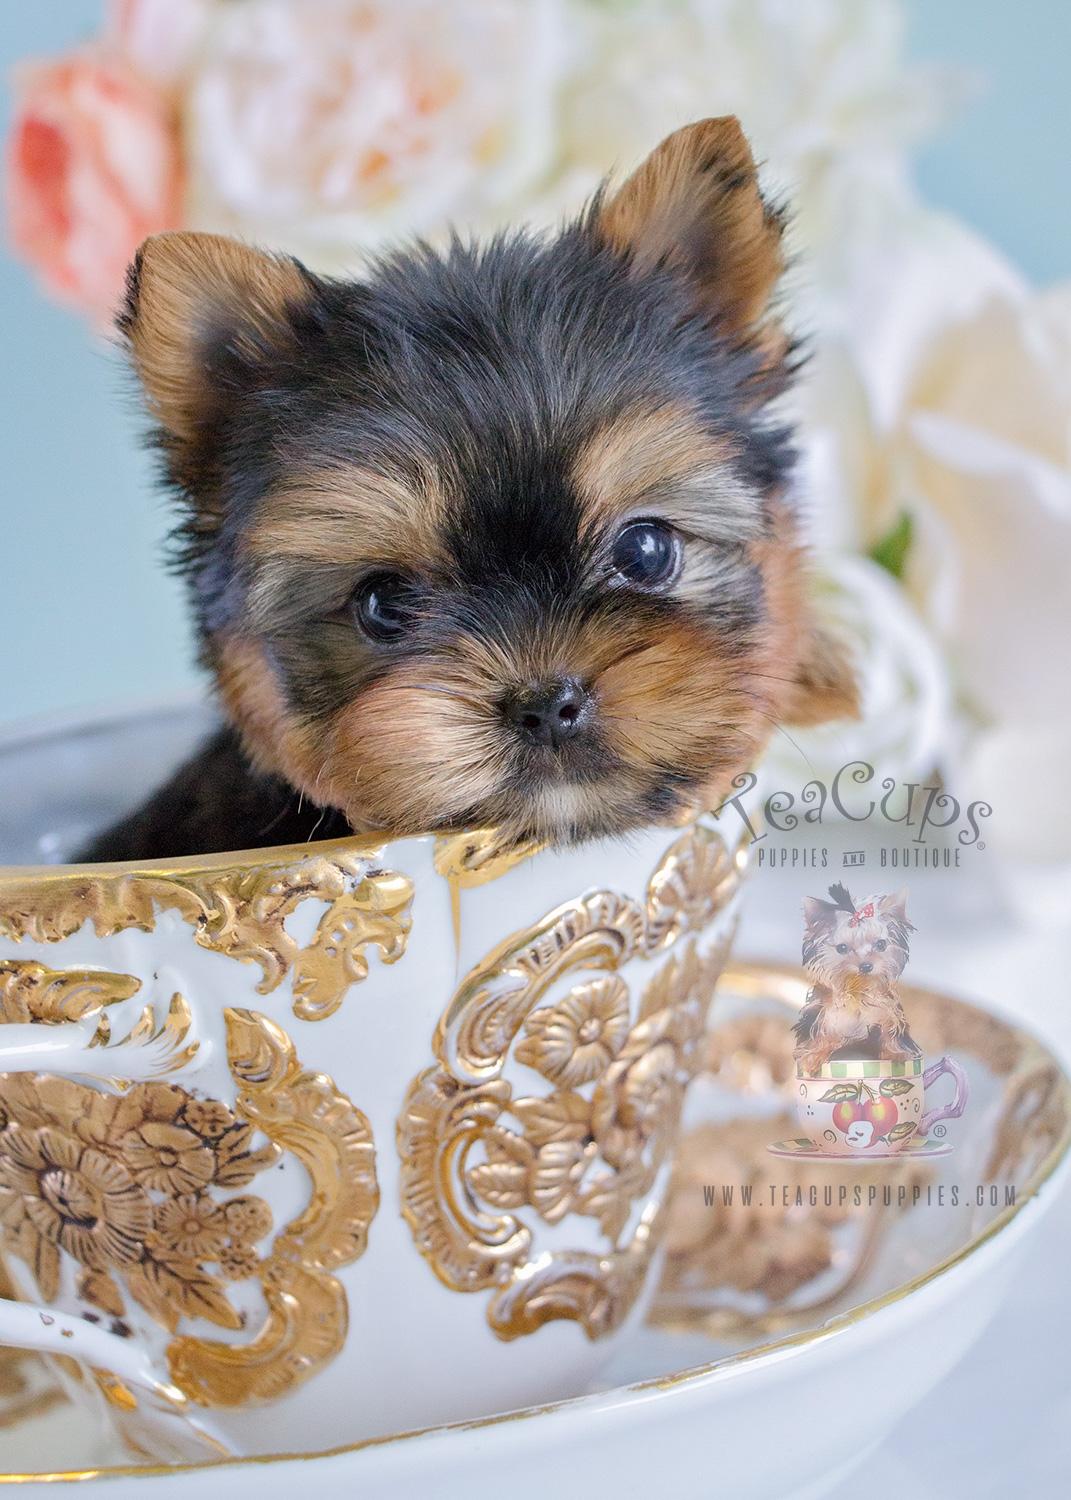 Cute Dog Puppy Wallpapers Adorable Yorkie Puppy For Sale In Broward County Teacups